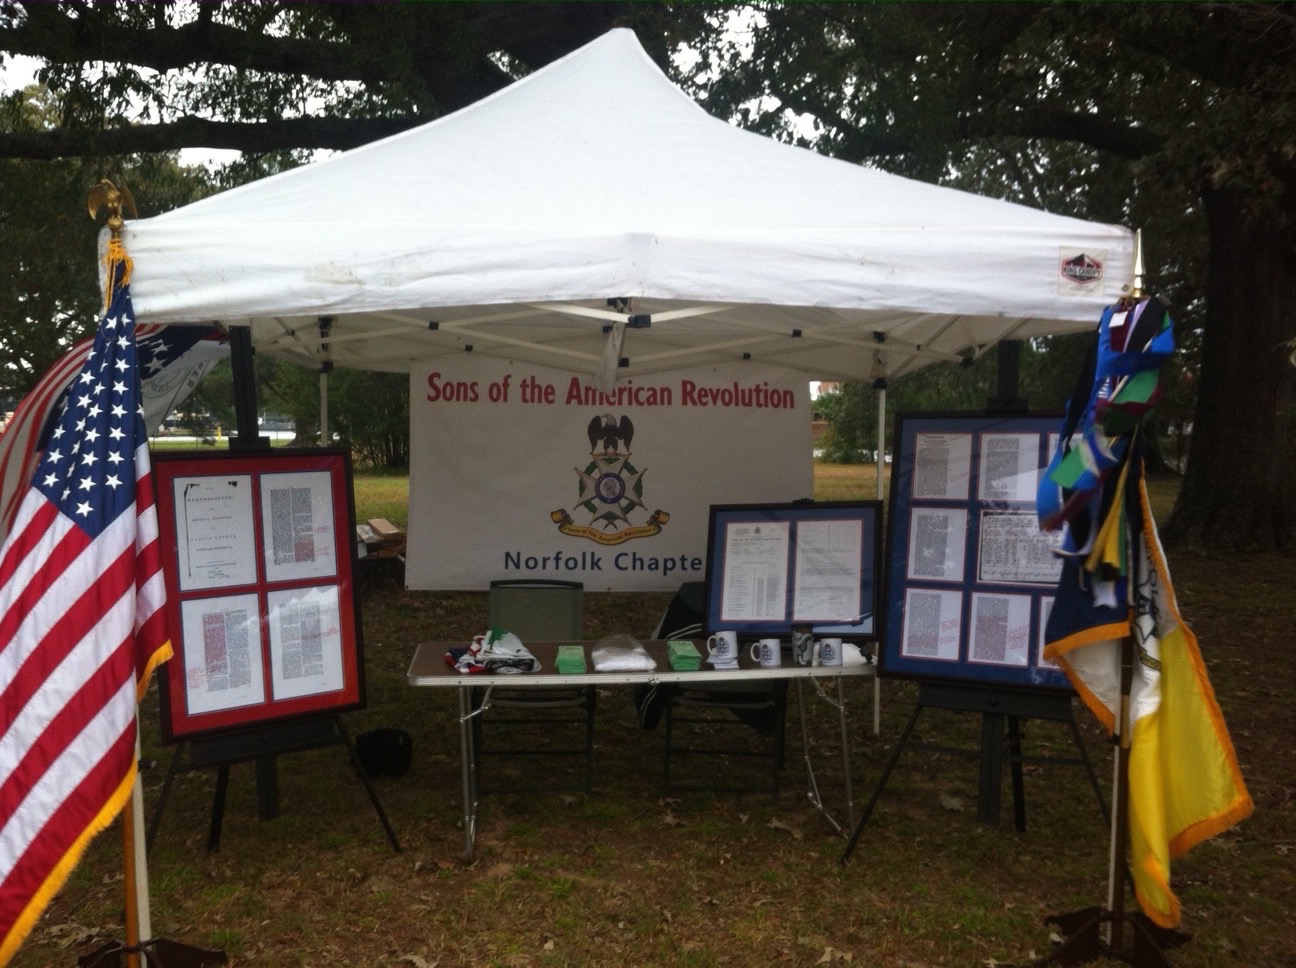 The Norfolk Chapter Tent